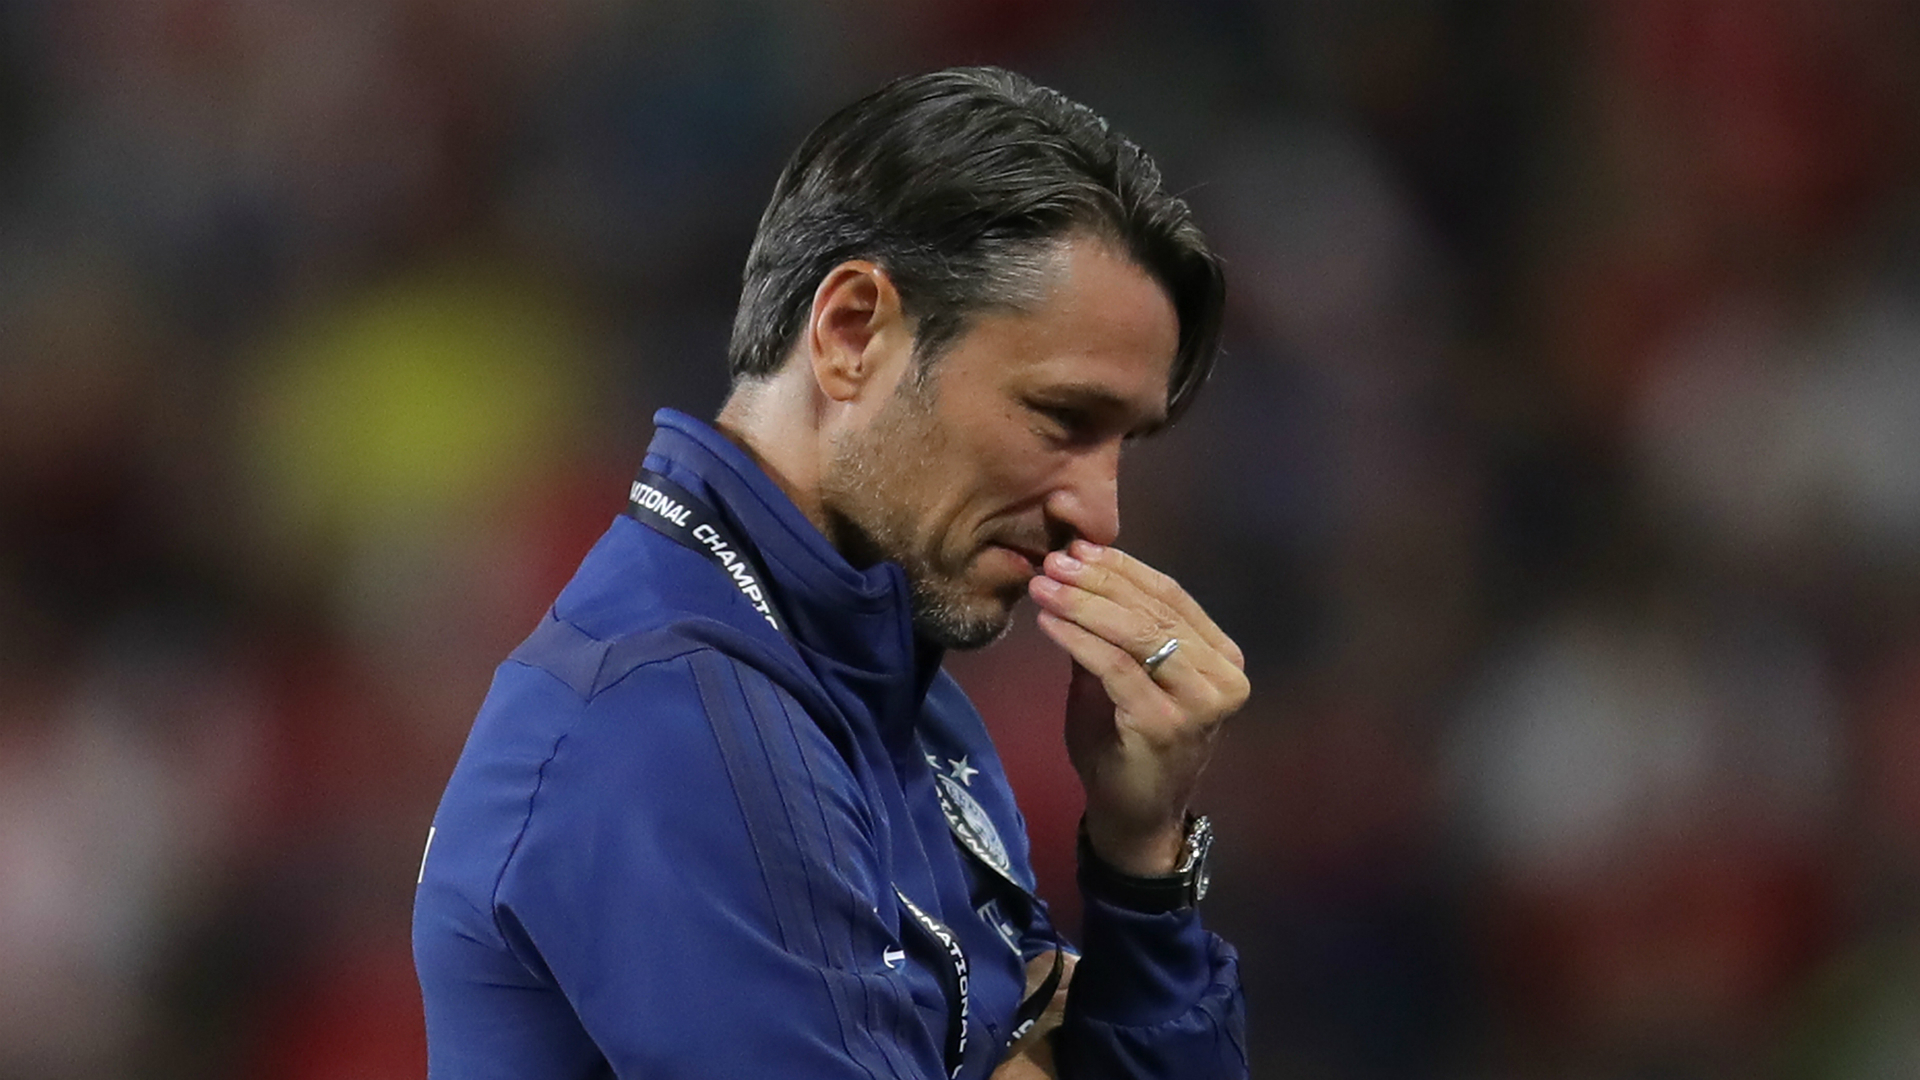 Kovac finds bright side to Bayern's late loss to Arsenal